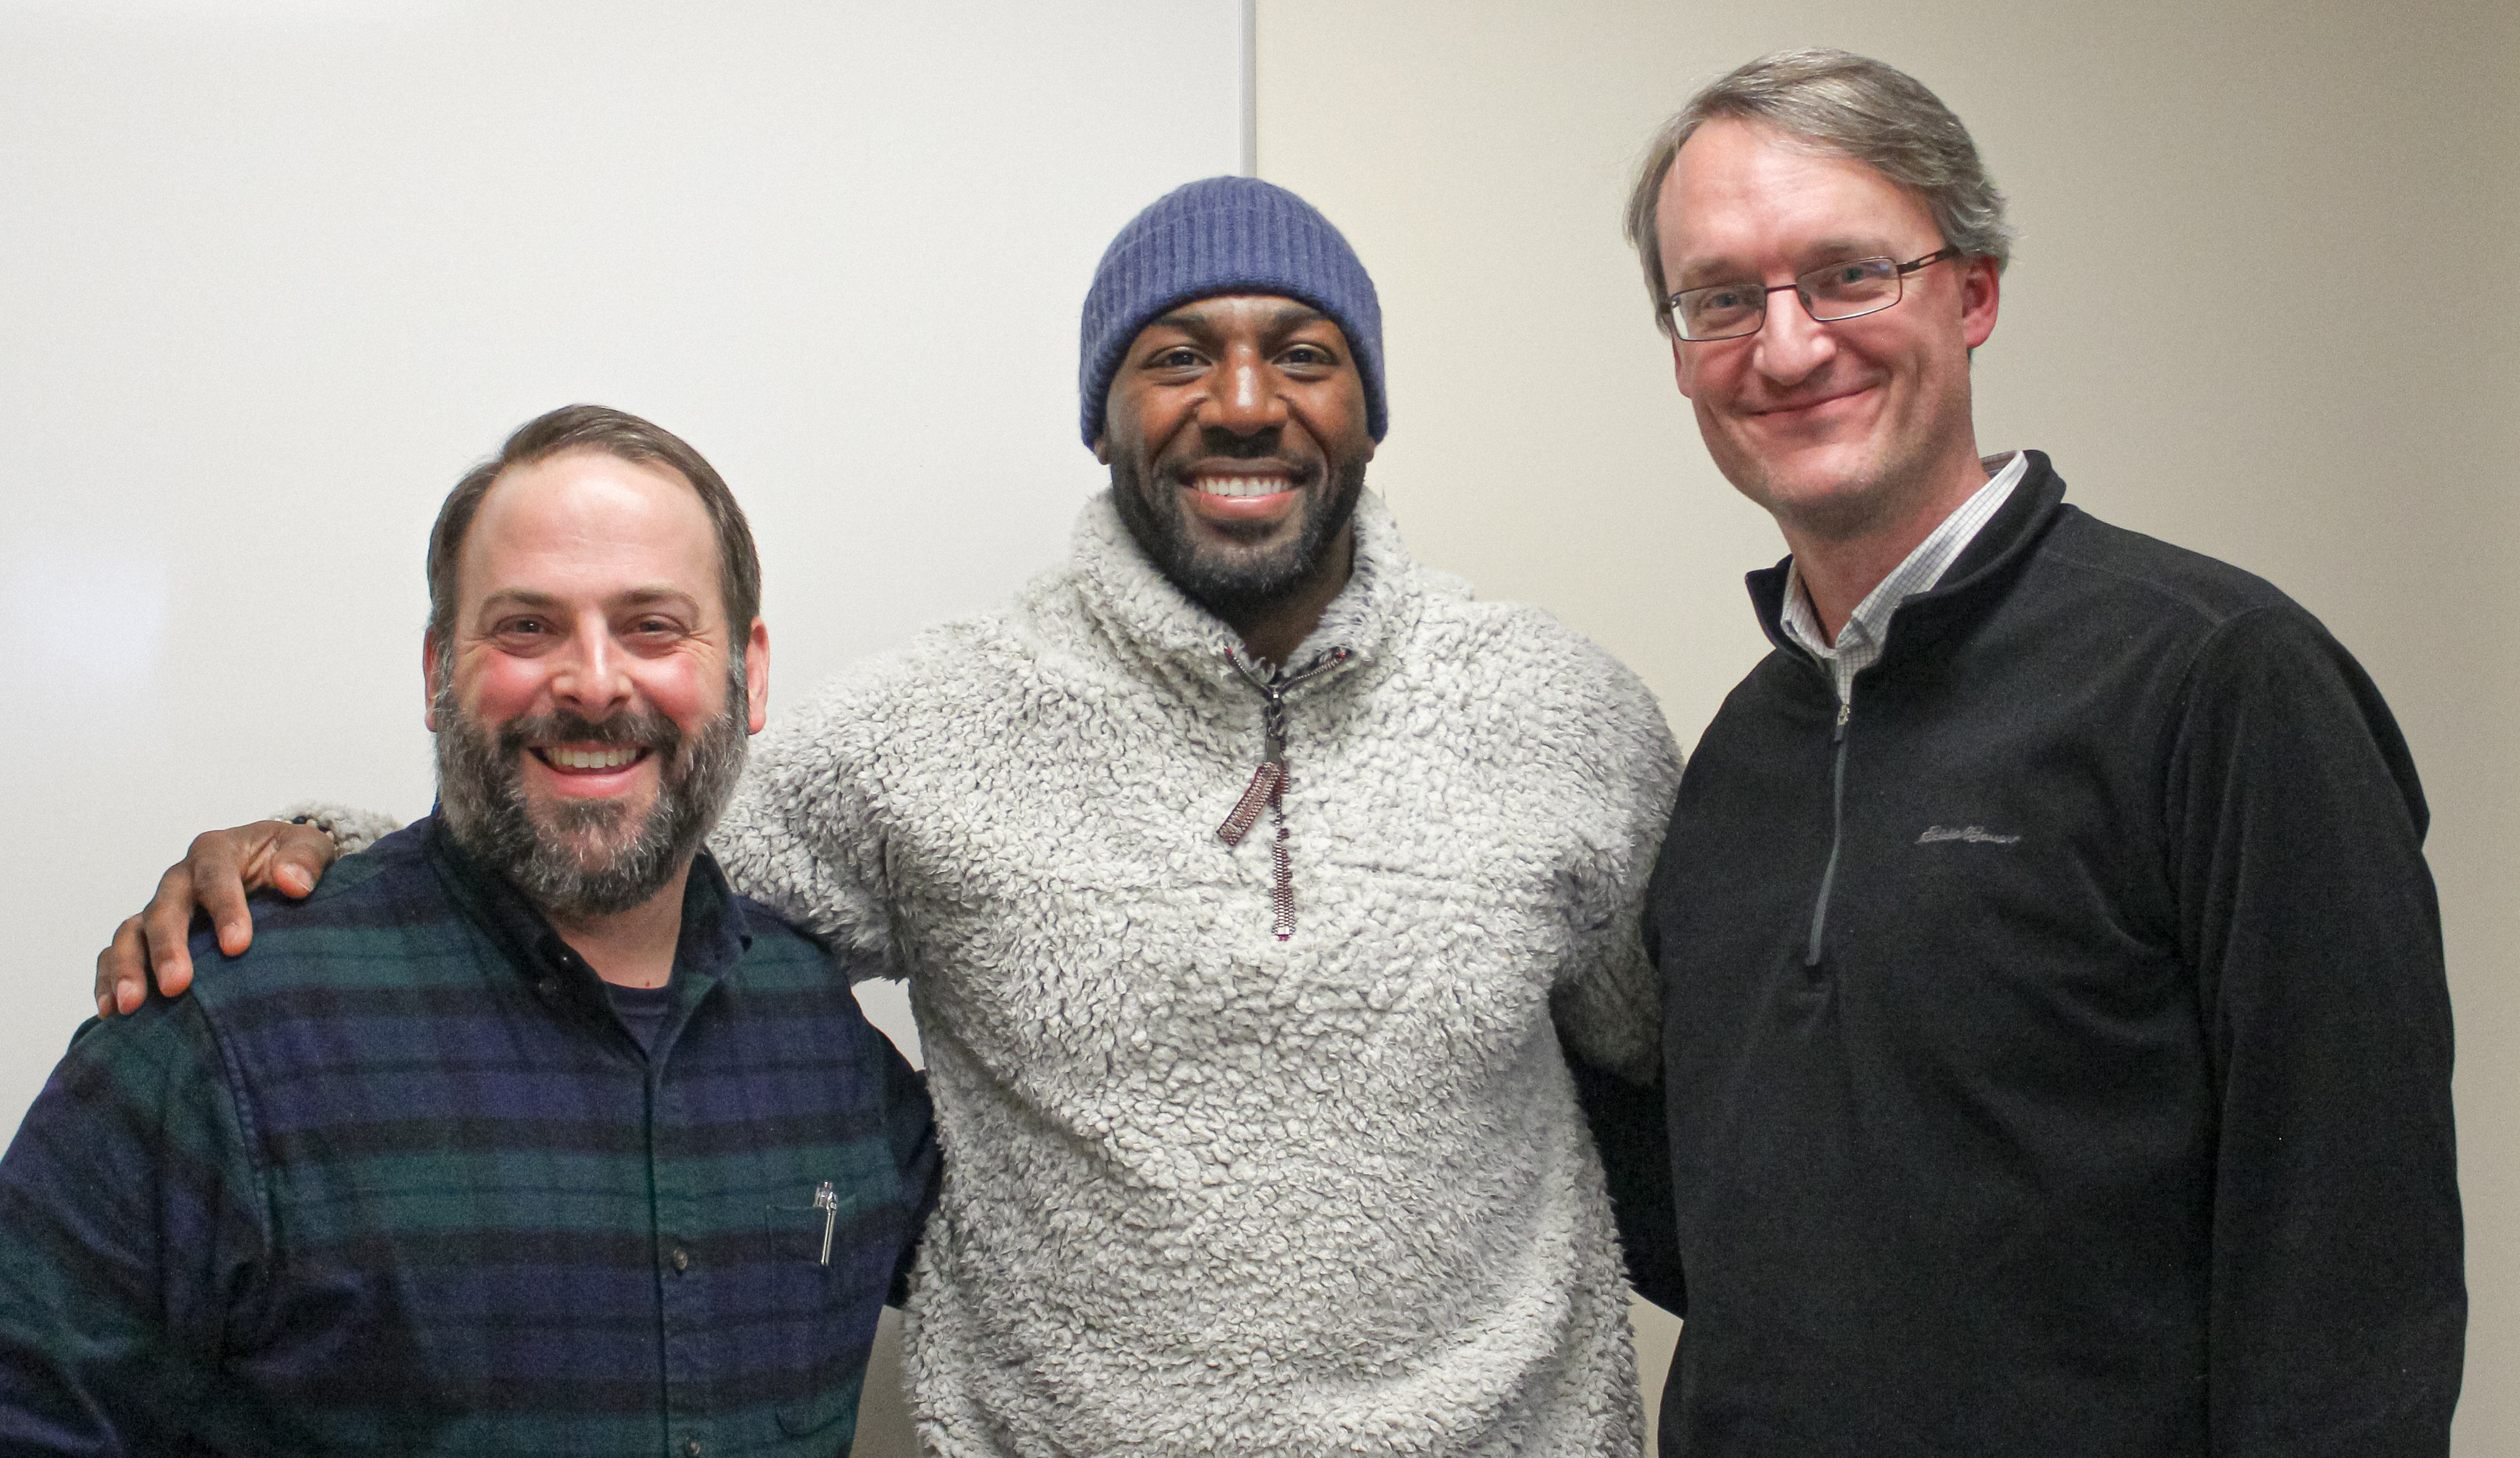 Wednesday's Podcast: Inside the Life of an NFL Player